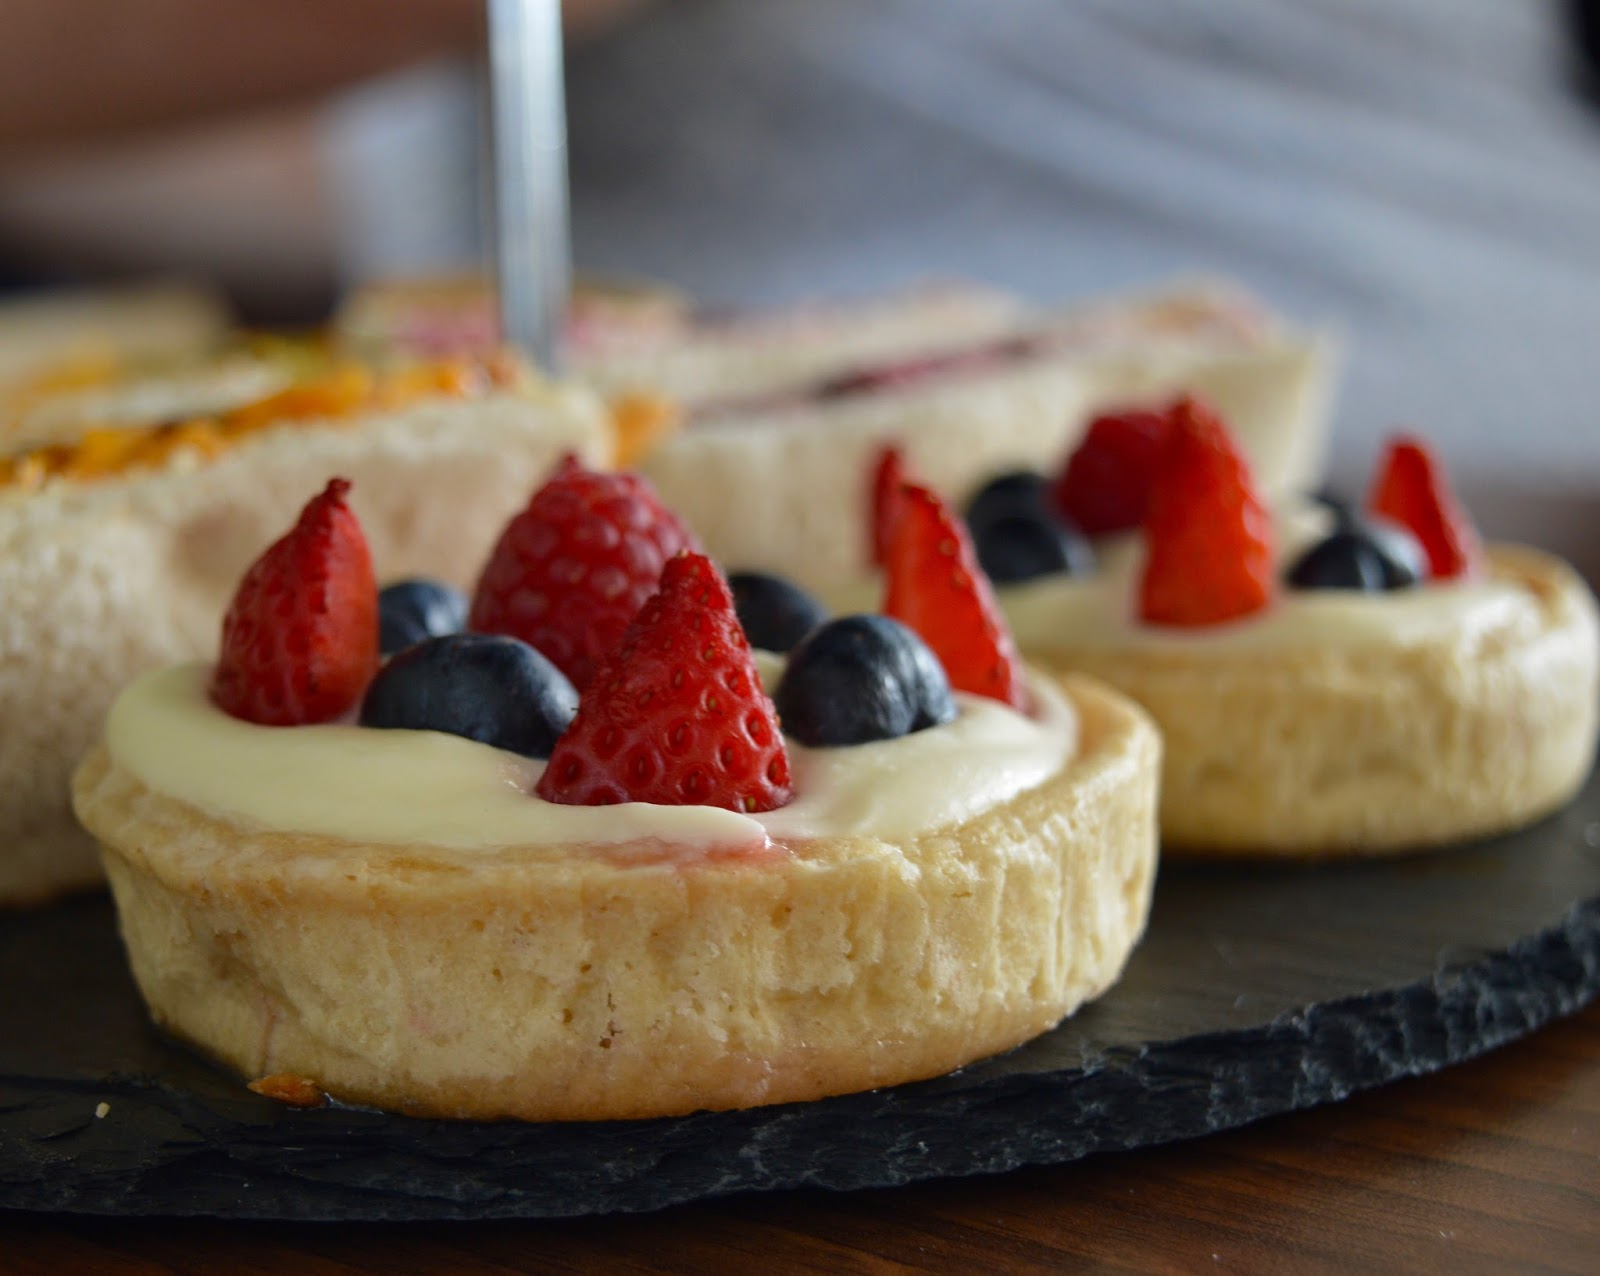 Cafe 32 | Linskill Centre, North Shields - A review - homemade afternoon tea